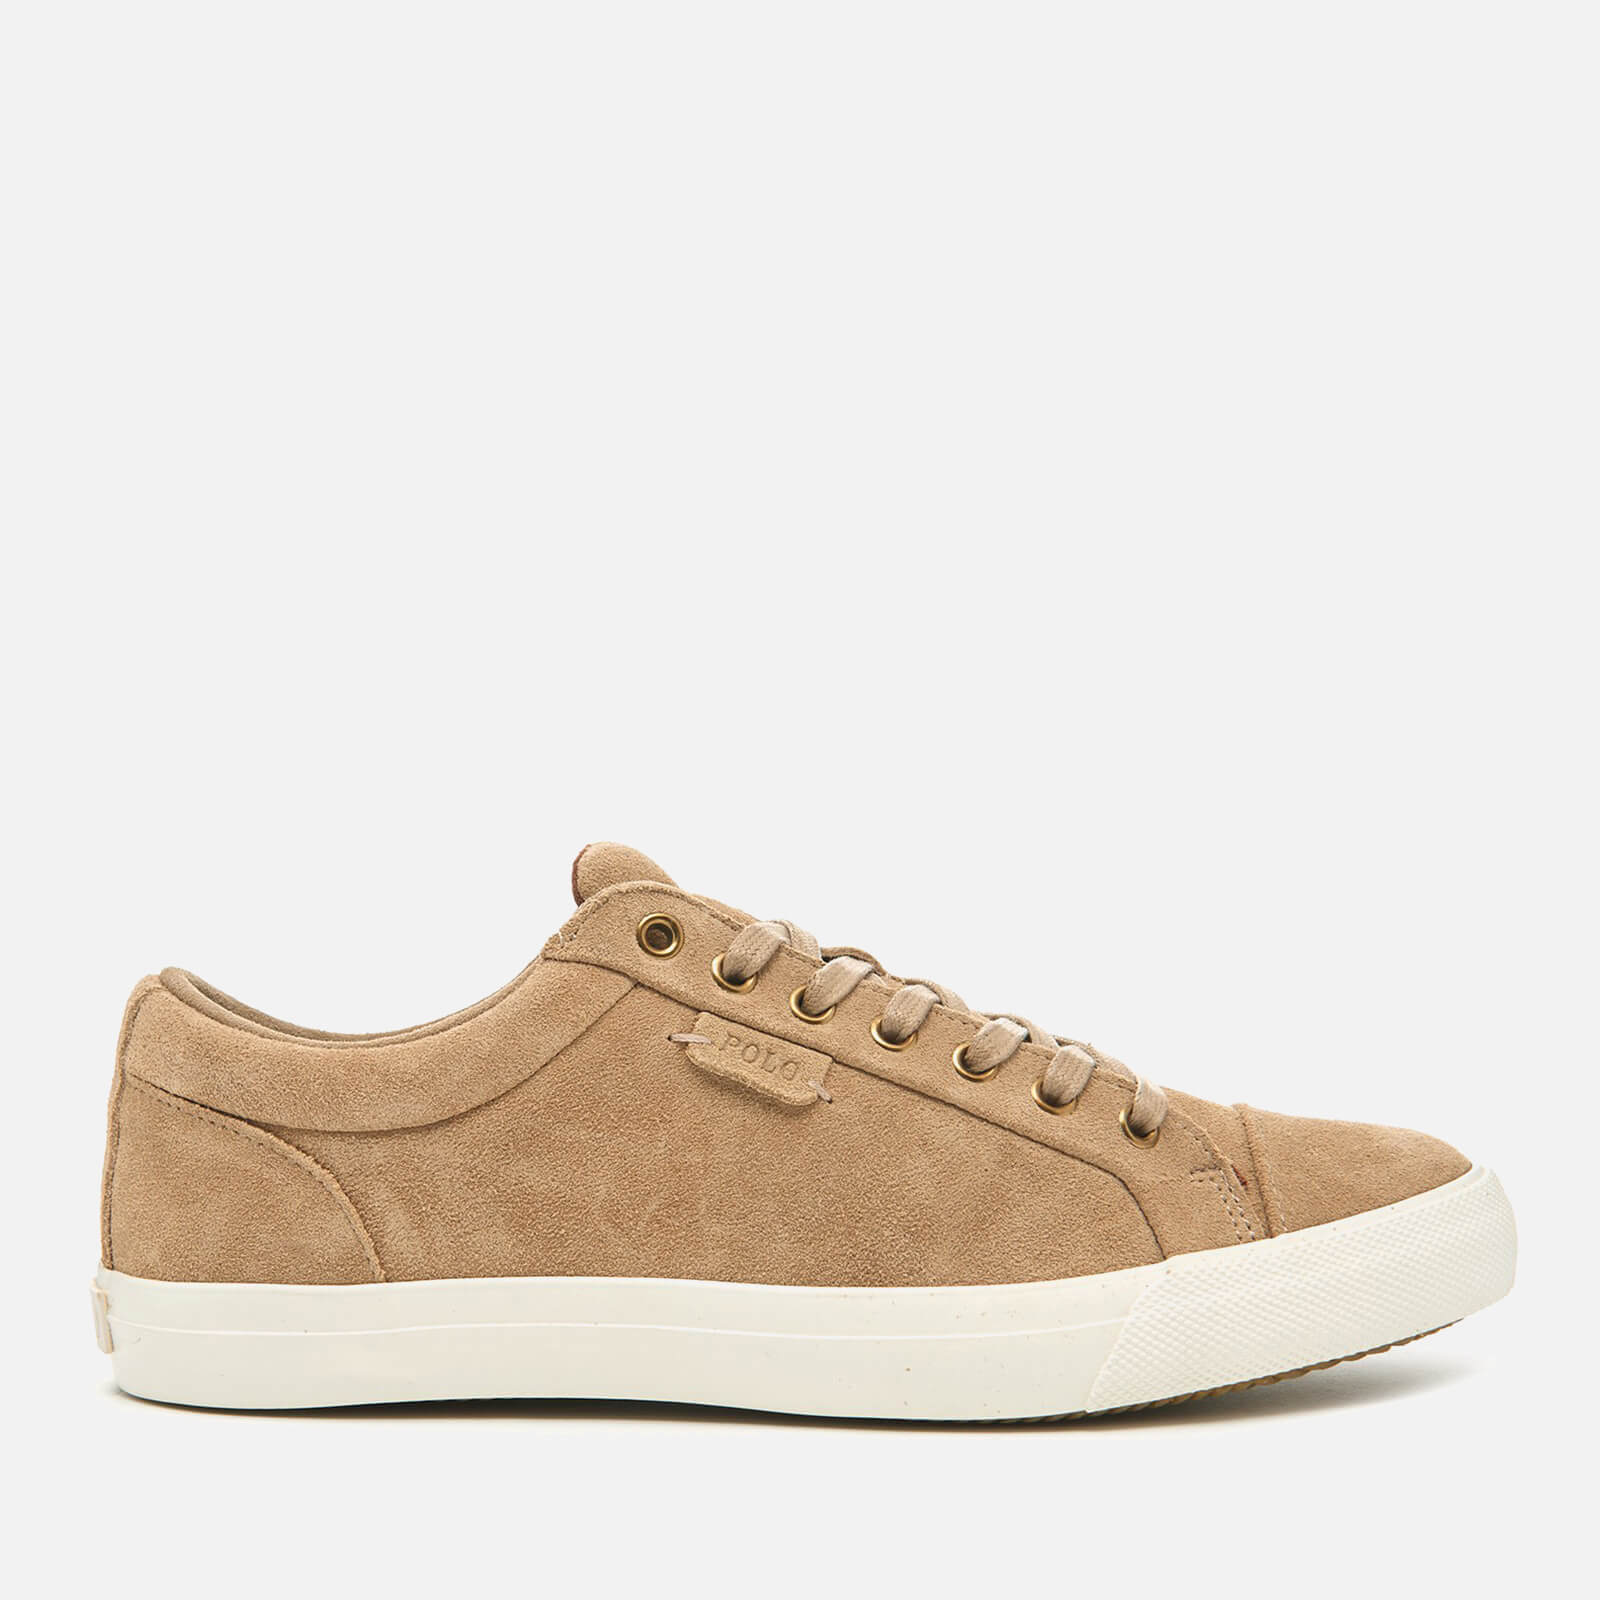 Court Lauren Geffrey Tan Men's Polo Trainers Suede Ralph 5Ac4qj3RL